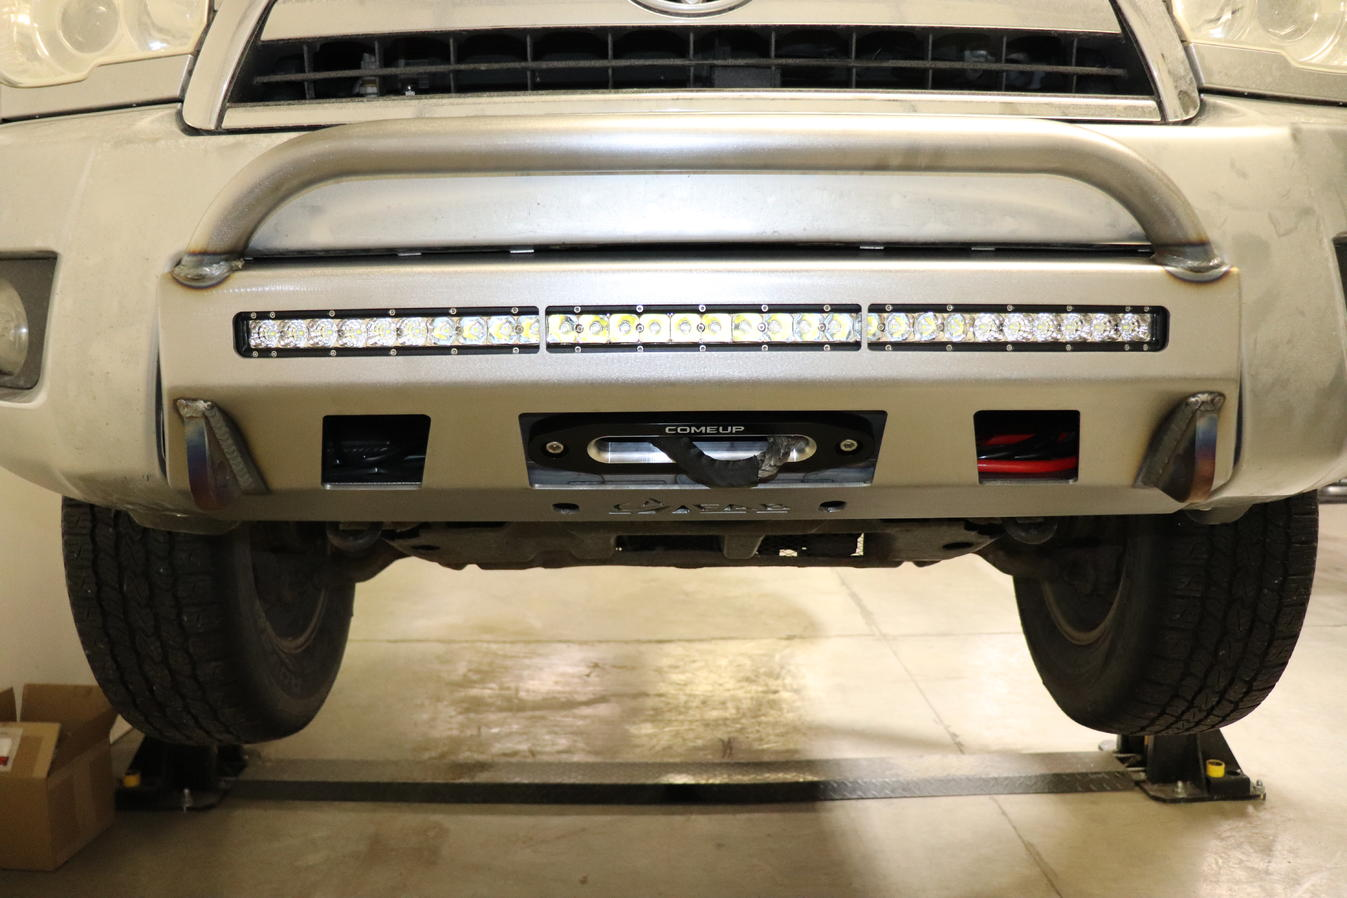 C4 Fab 4Runner Lo-Pro Winch Bumper - 4th Gen (2006-2009)